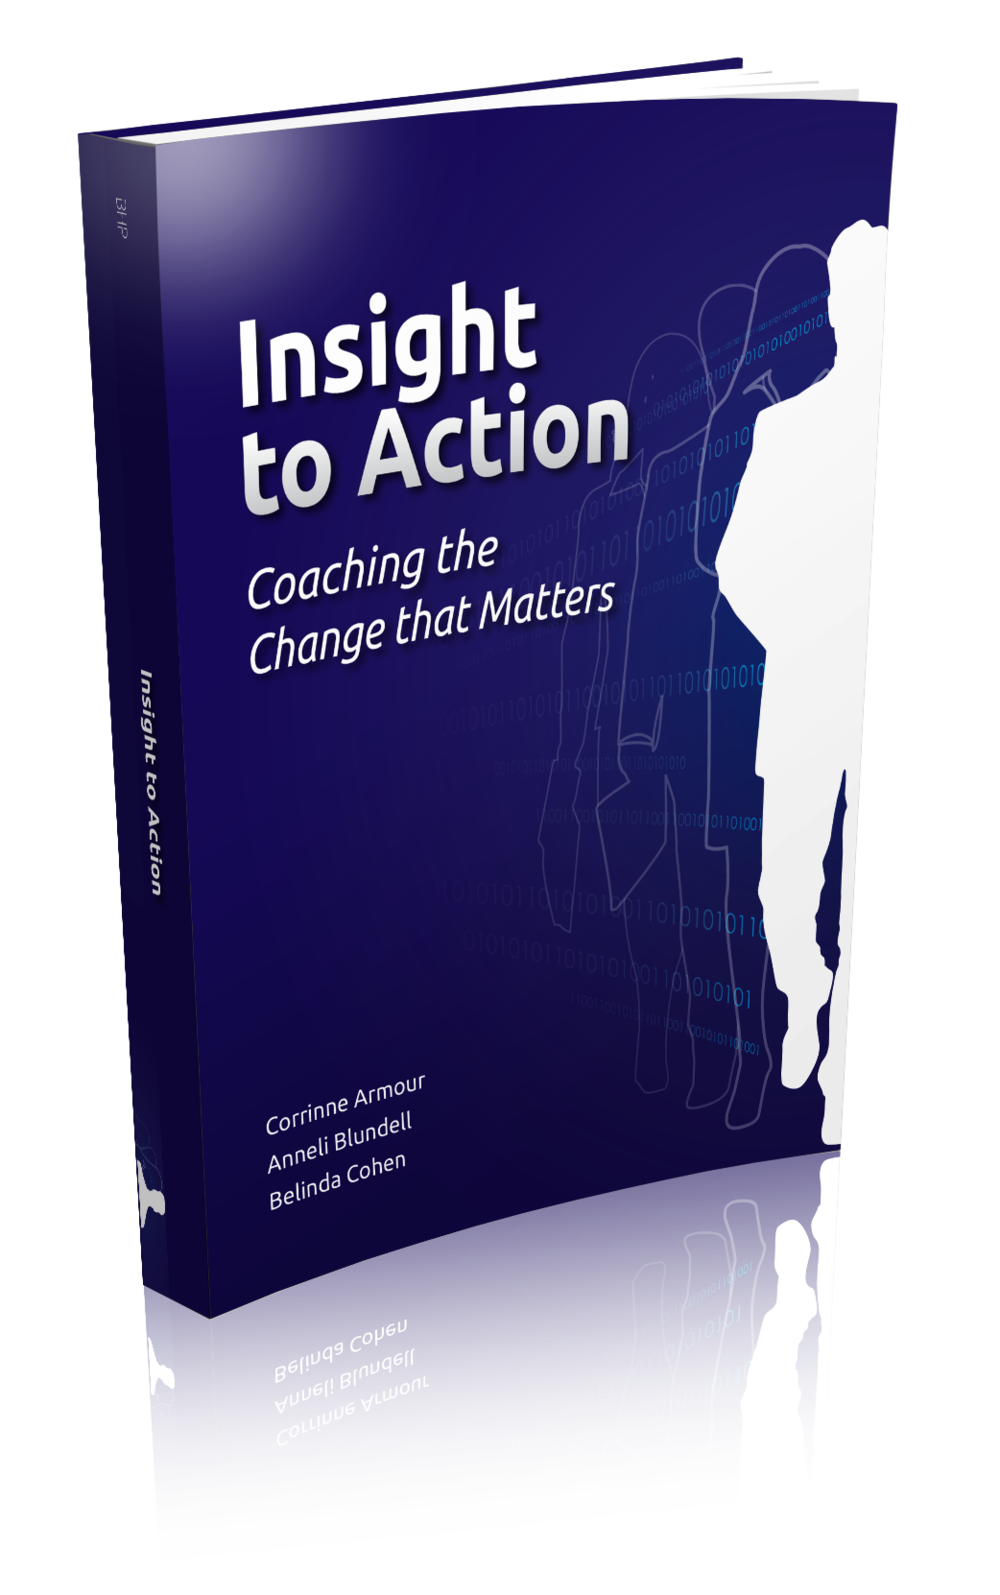 Insight to Action-Cover Mockup_PRINT.png